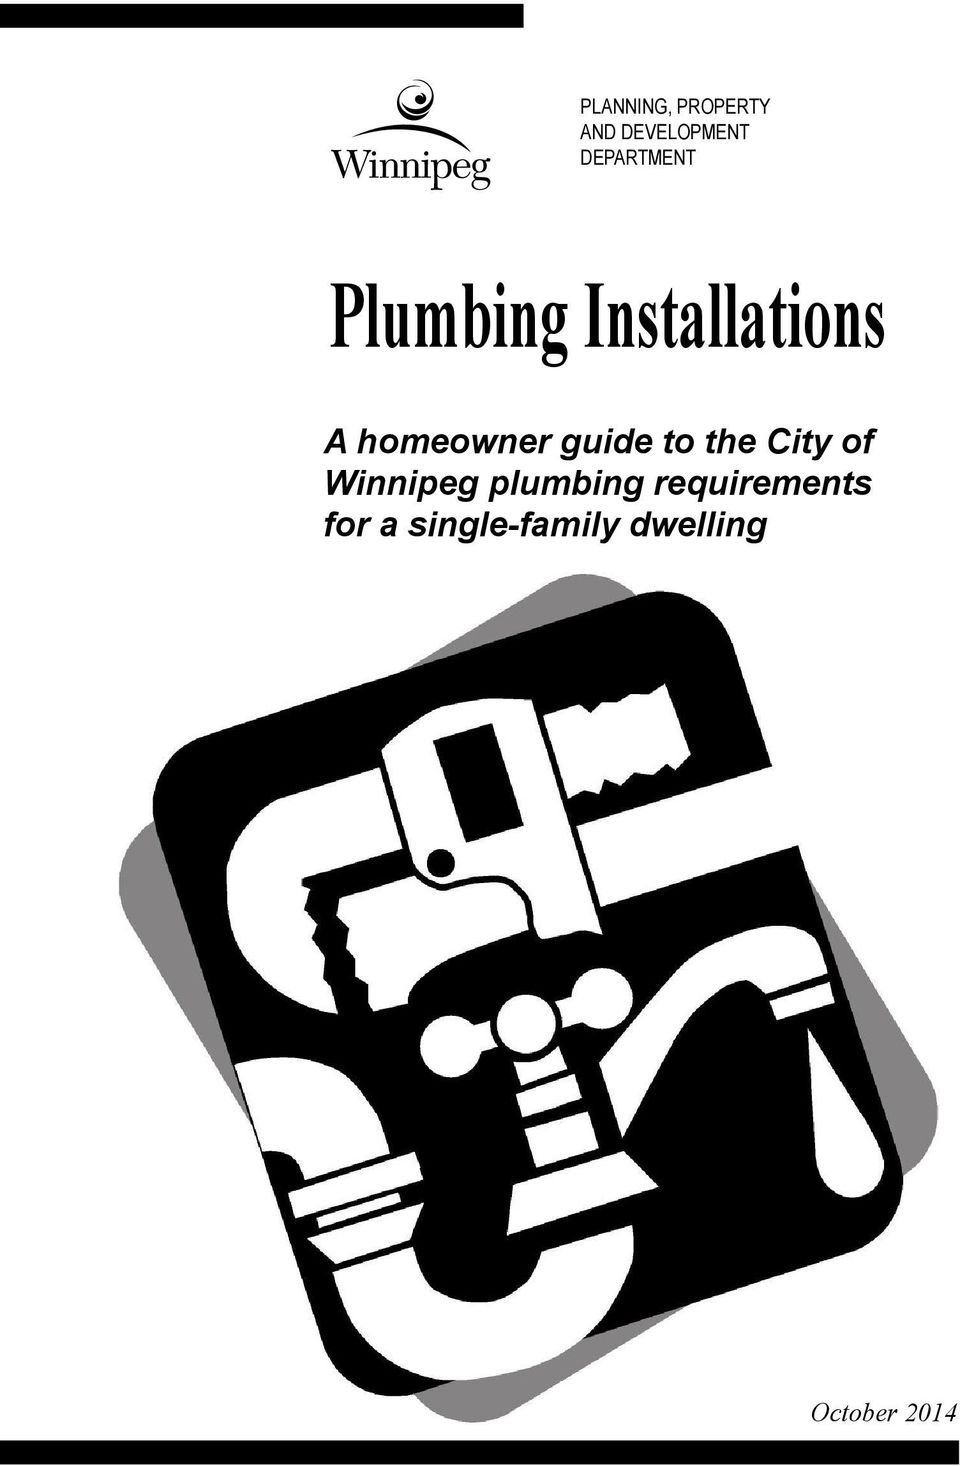 homeowner guide to the City of Winnipeg